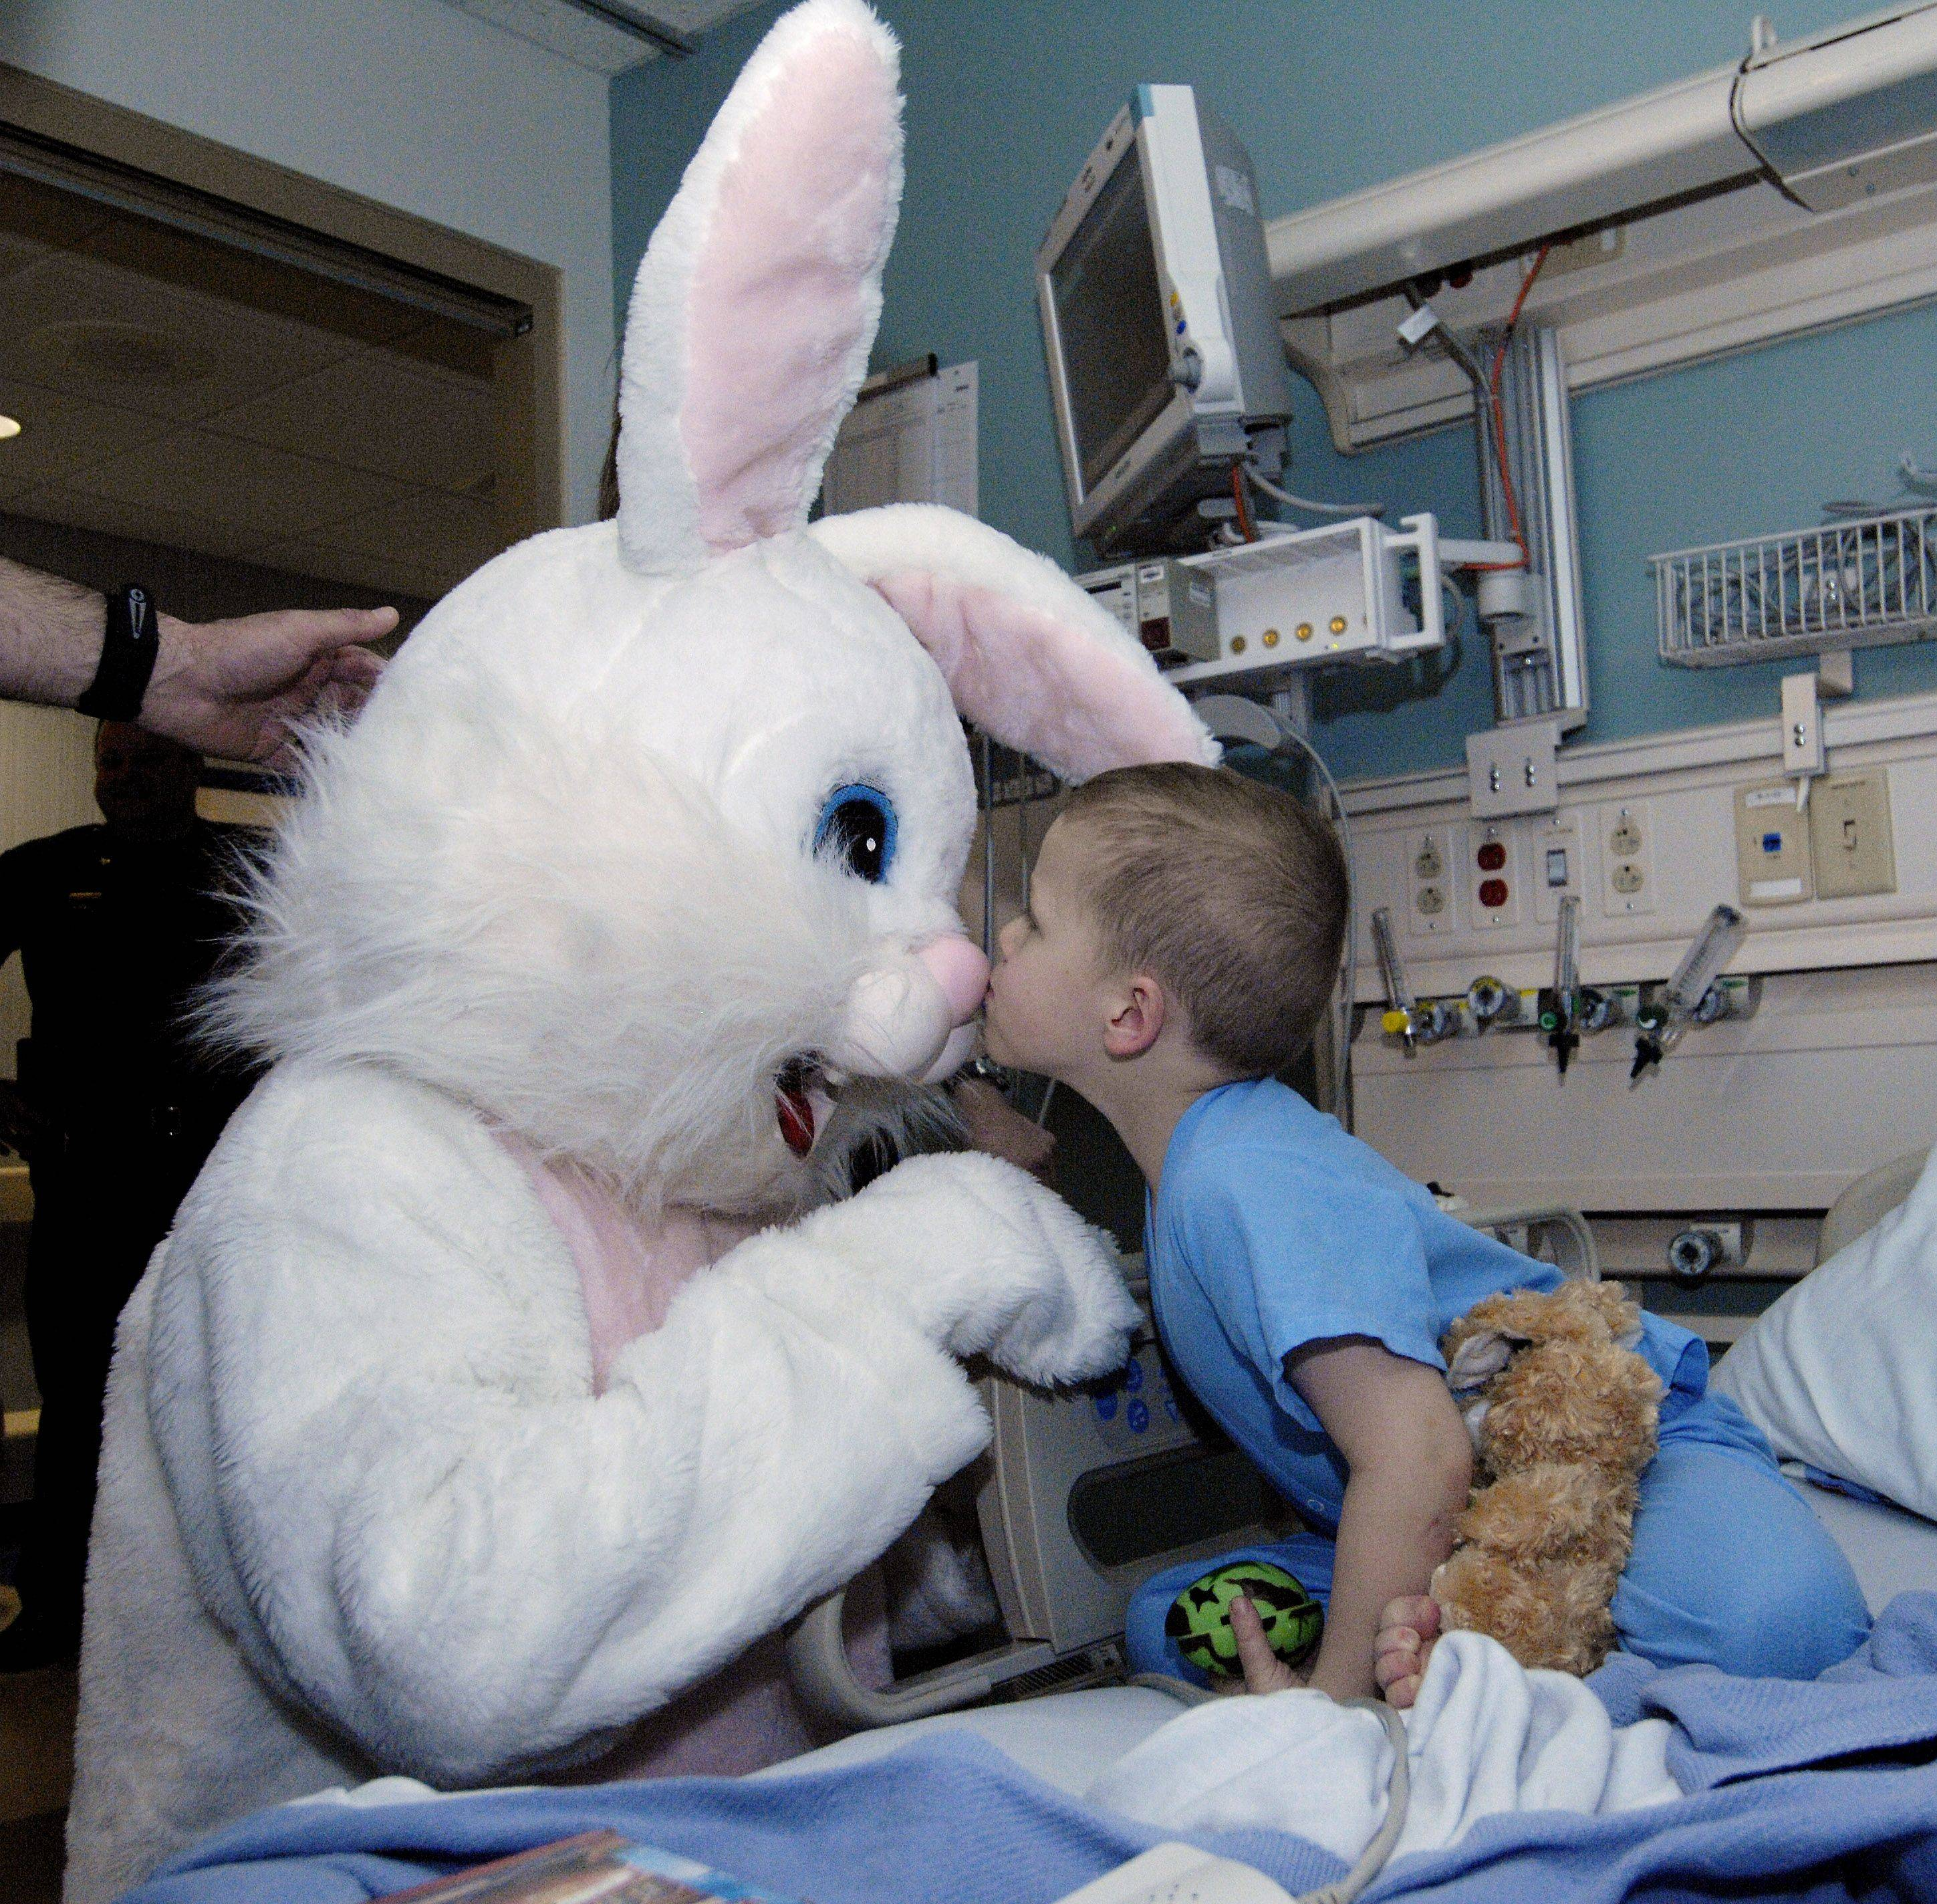 Lucas Schomas, 4 of Sugar Grove gives the Easter Bunny a kiss on the nose during a visit he recieved while in the pediatric ward of Central DuPage Hospital. The Easter Bunny visit was sponsored by DuPage County Sheriff department.